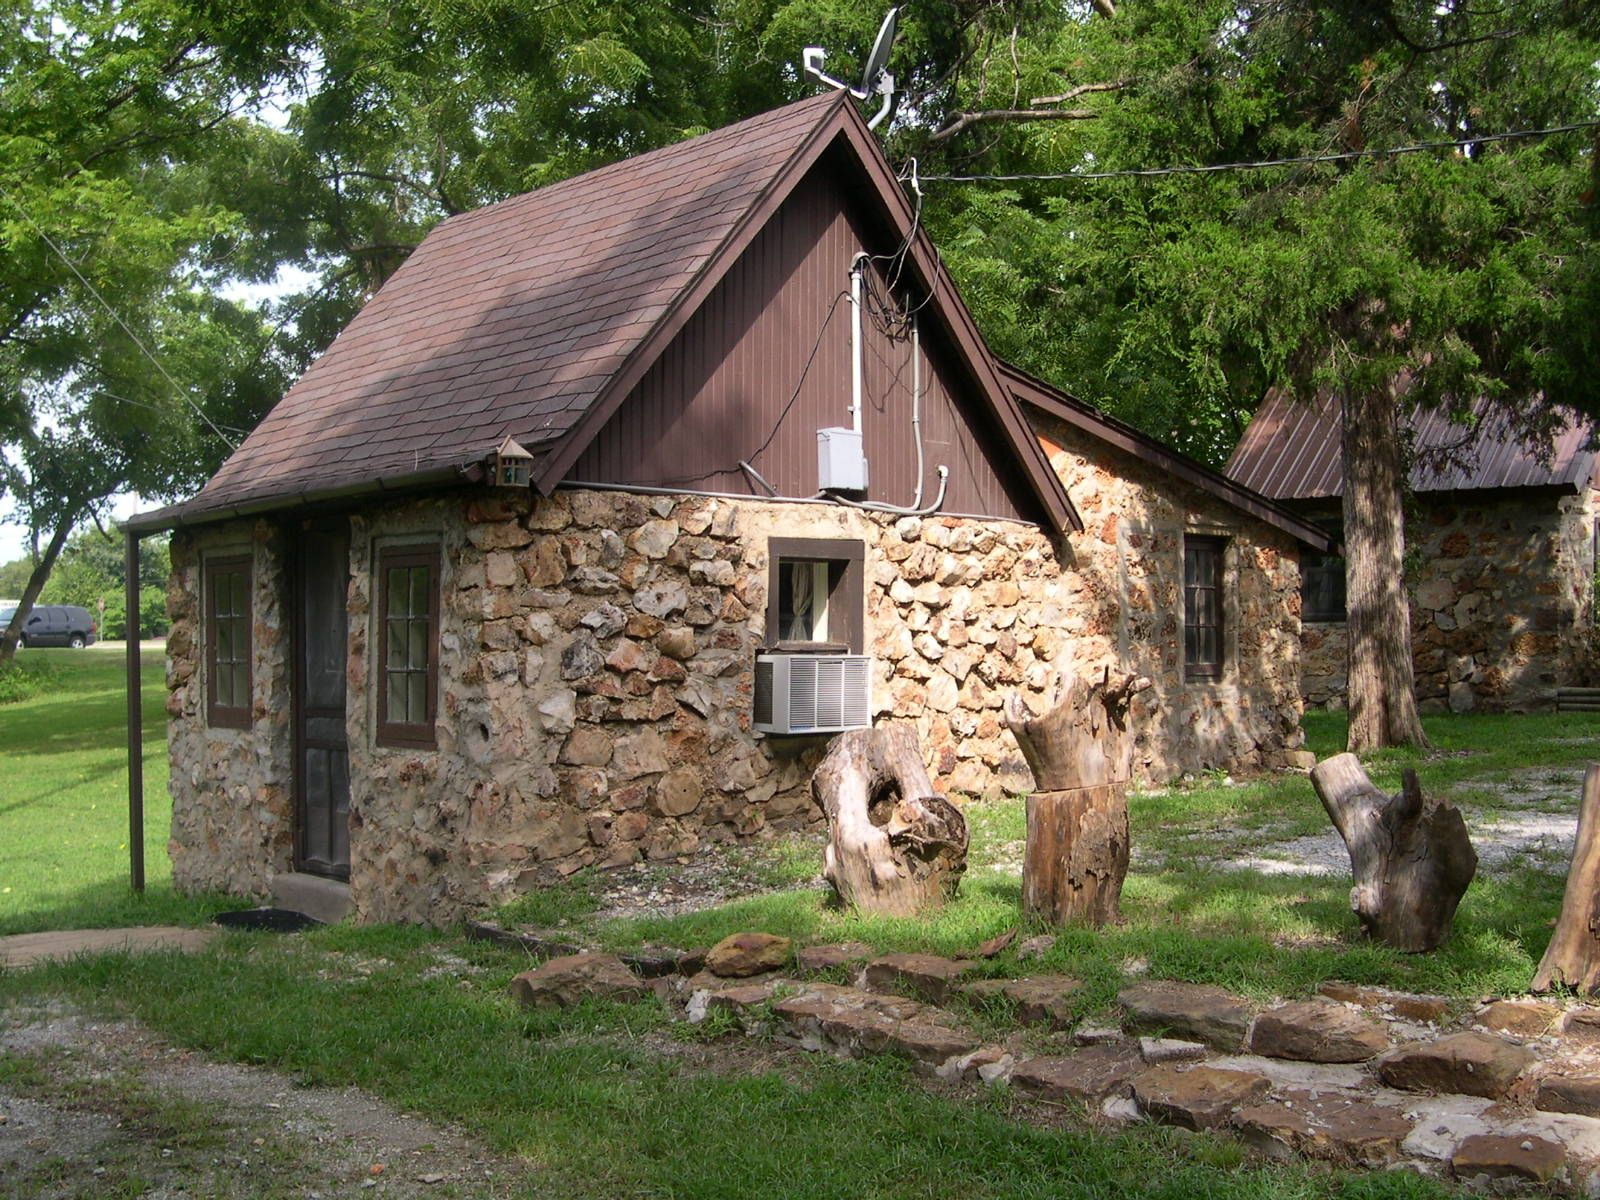 states lake rooms united cabin eucha rent oklahoma the rentals for woods new in cabins ok grand